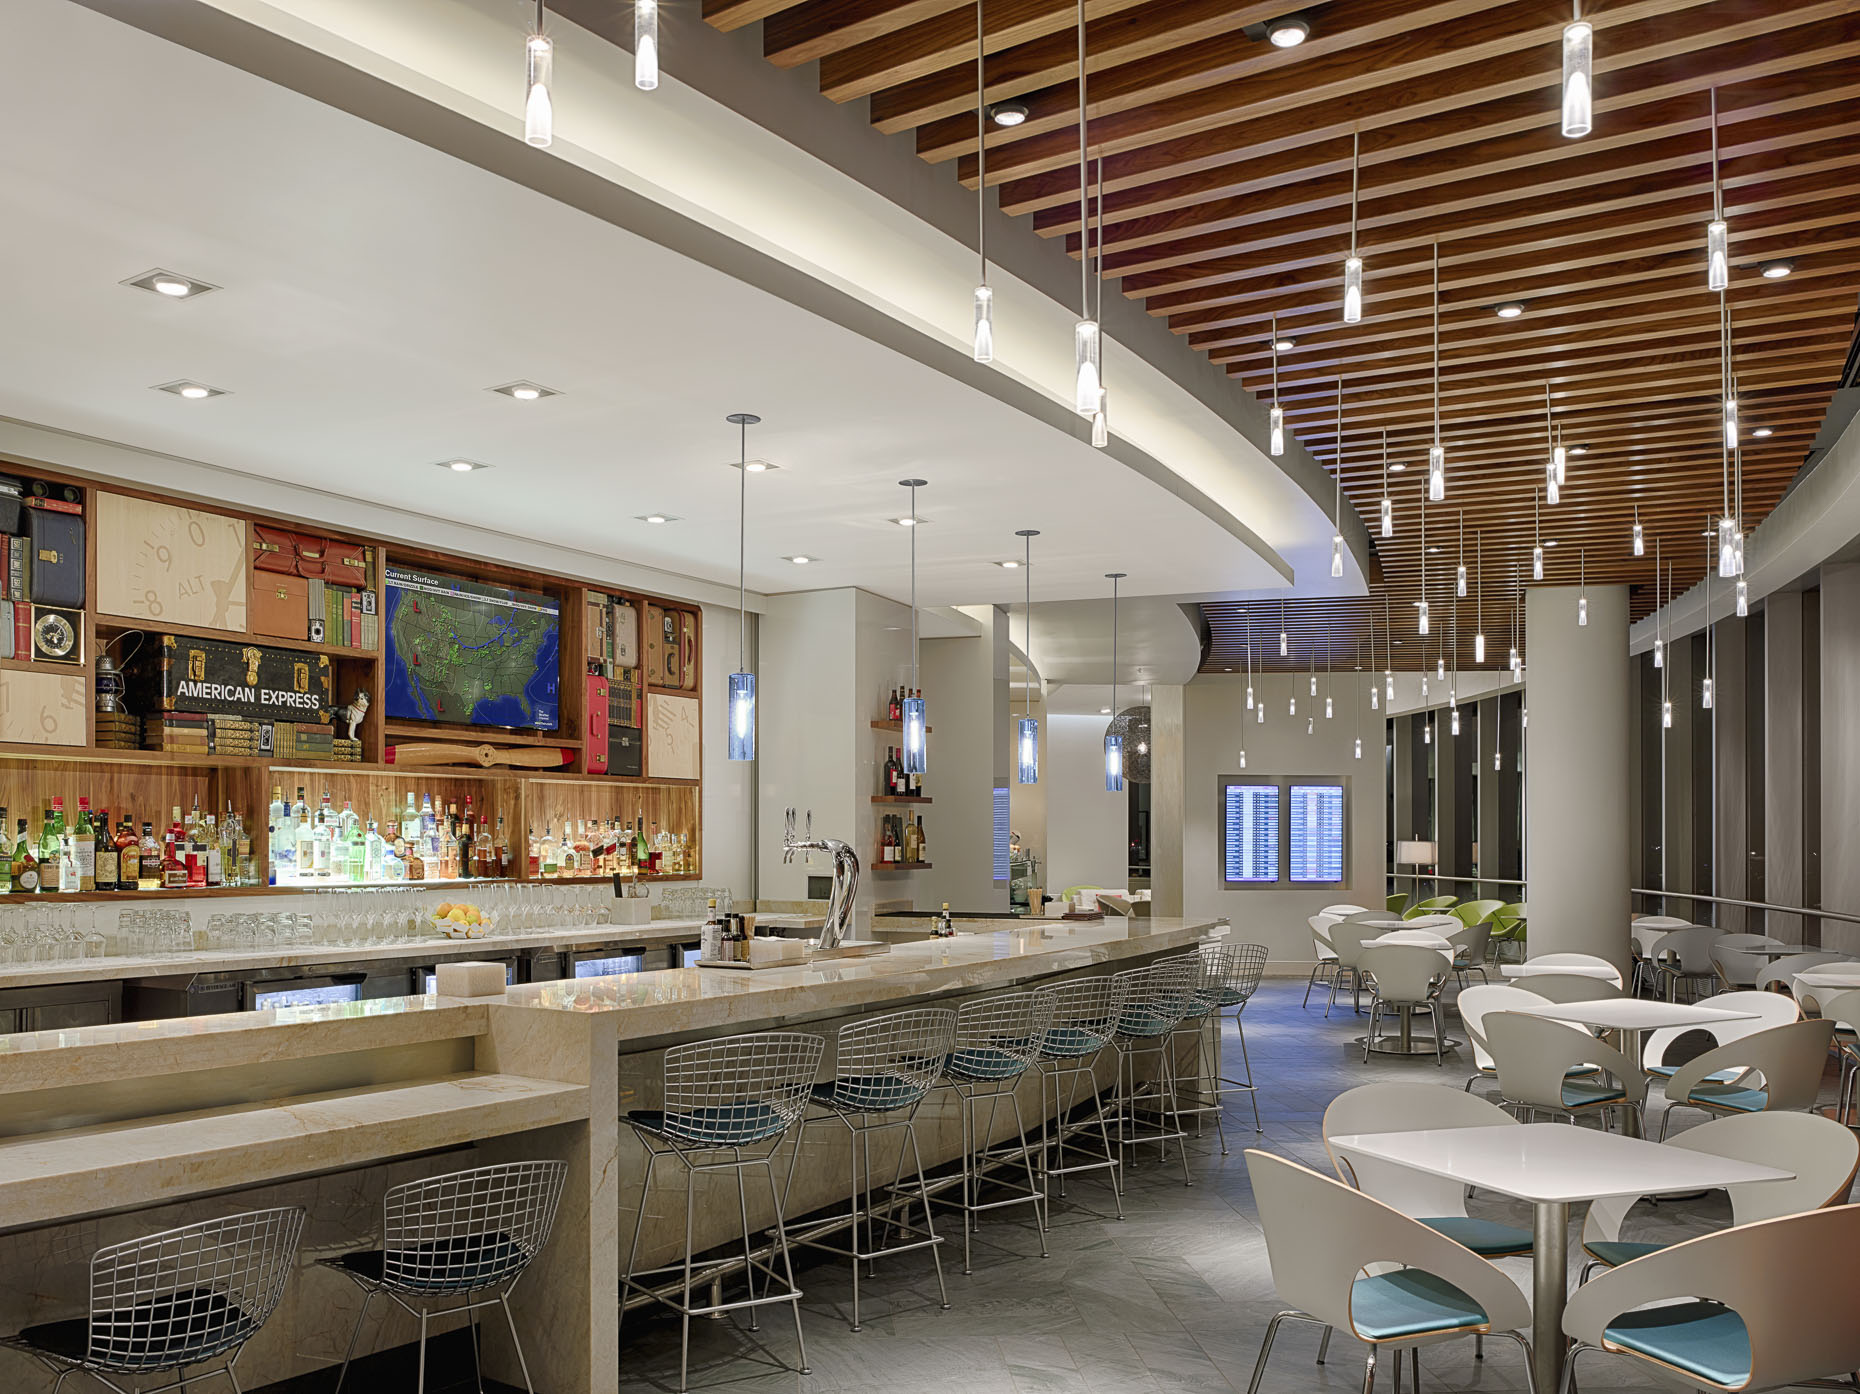 Miami International Airport AMEX Centurion Lounge for American Express photographed by Brad Feinknopf based in Columbus, Ohio